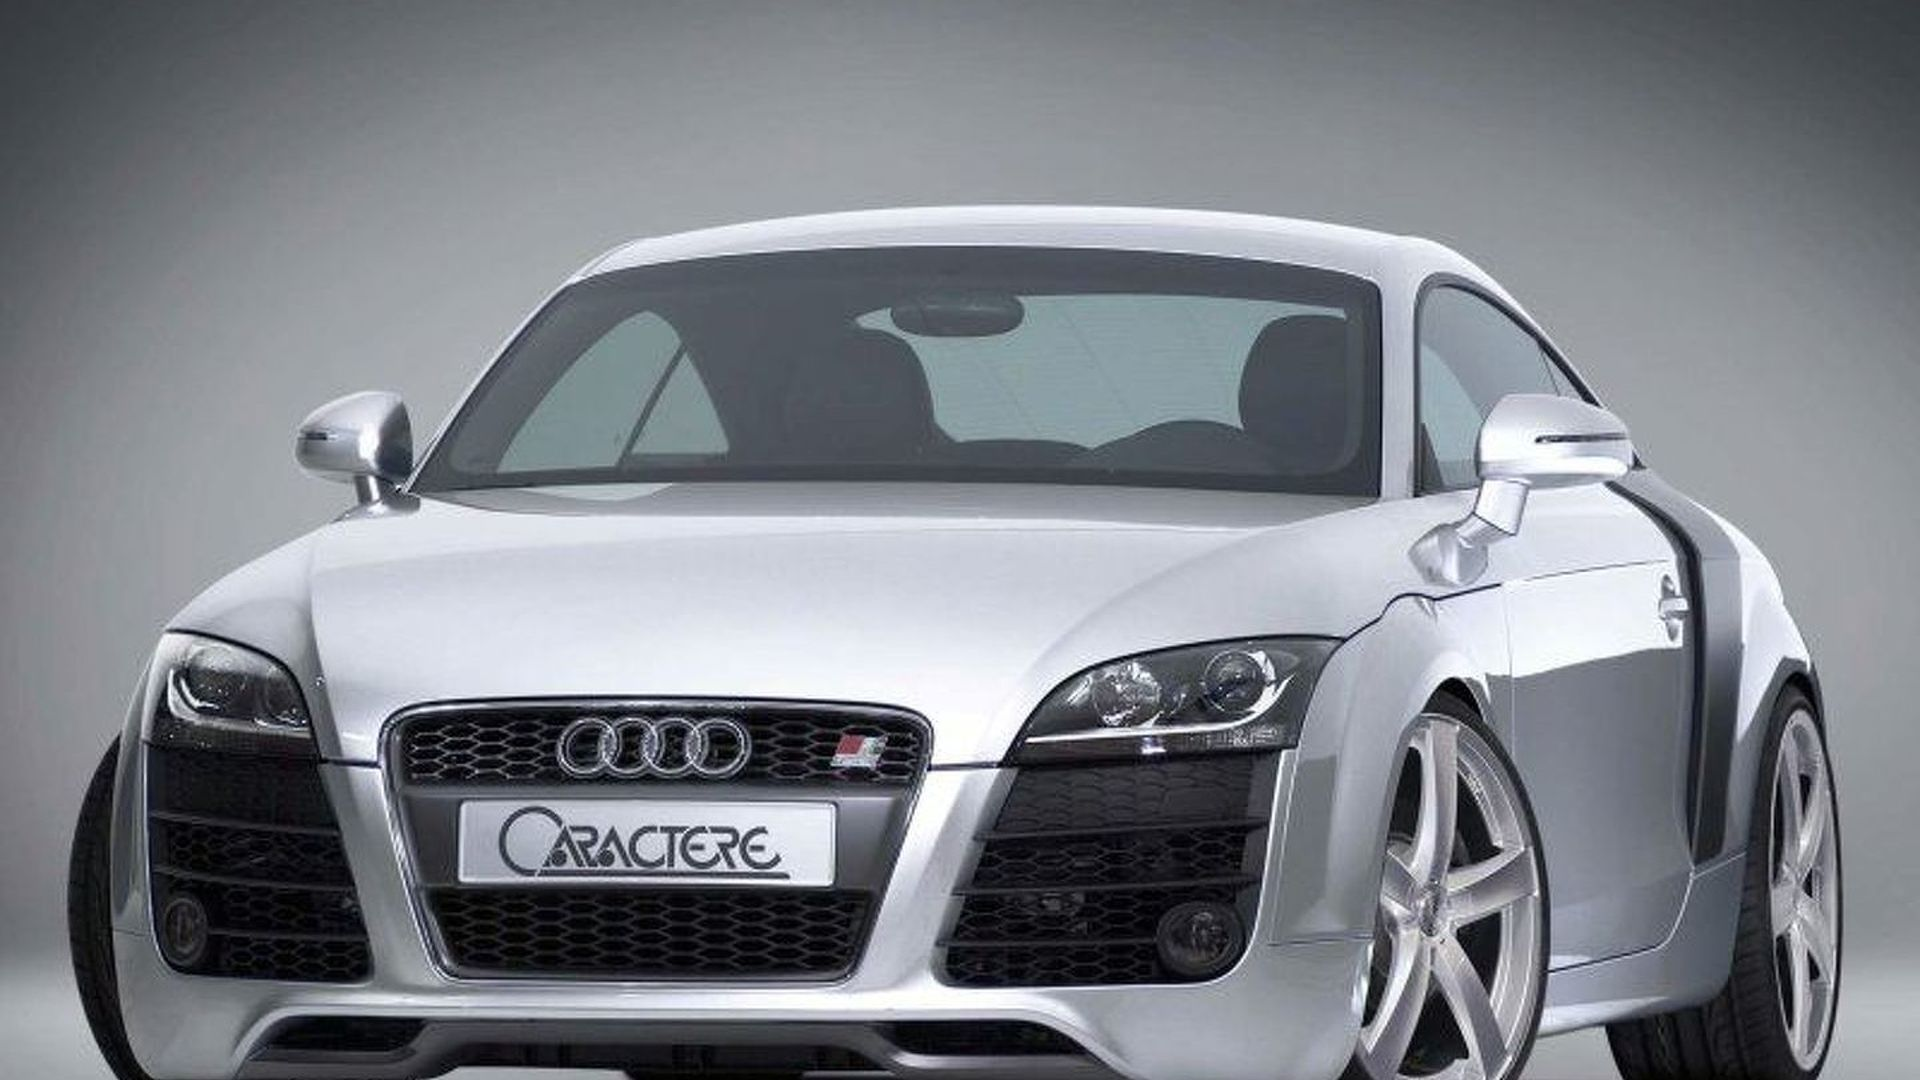 Audi TT Gets R8 Treatment by Caractere